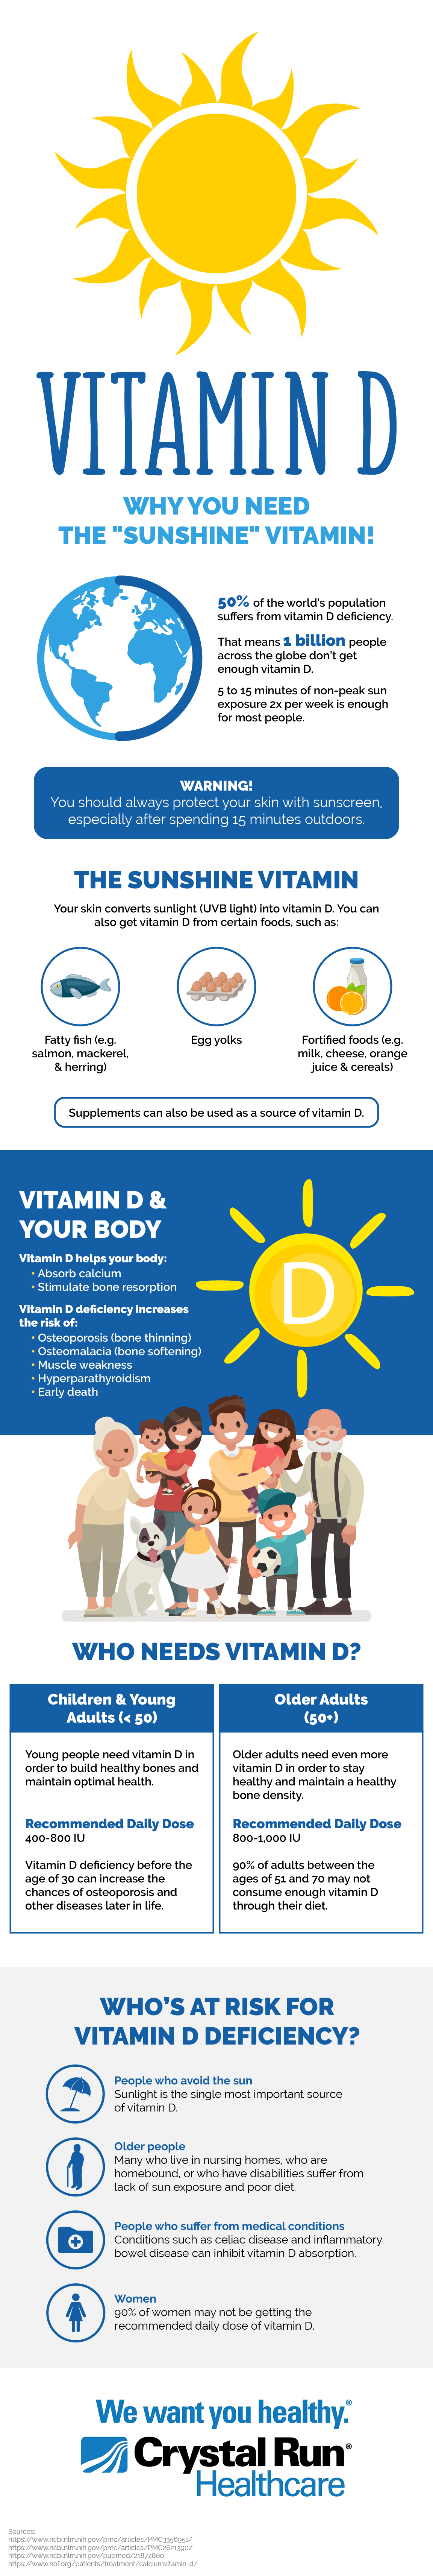 Why You Need Vitamin D Infographic